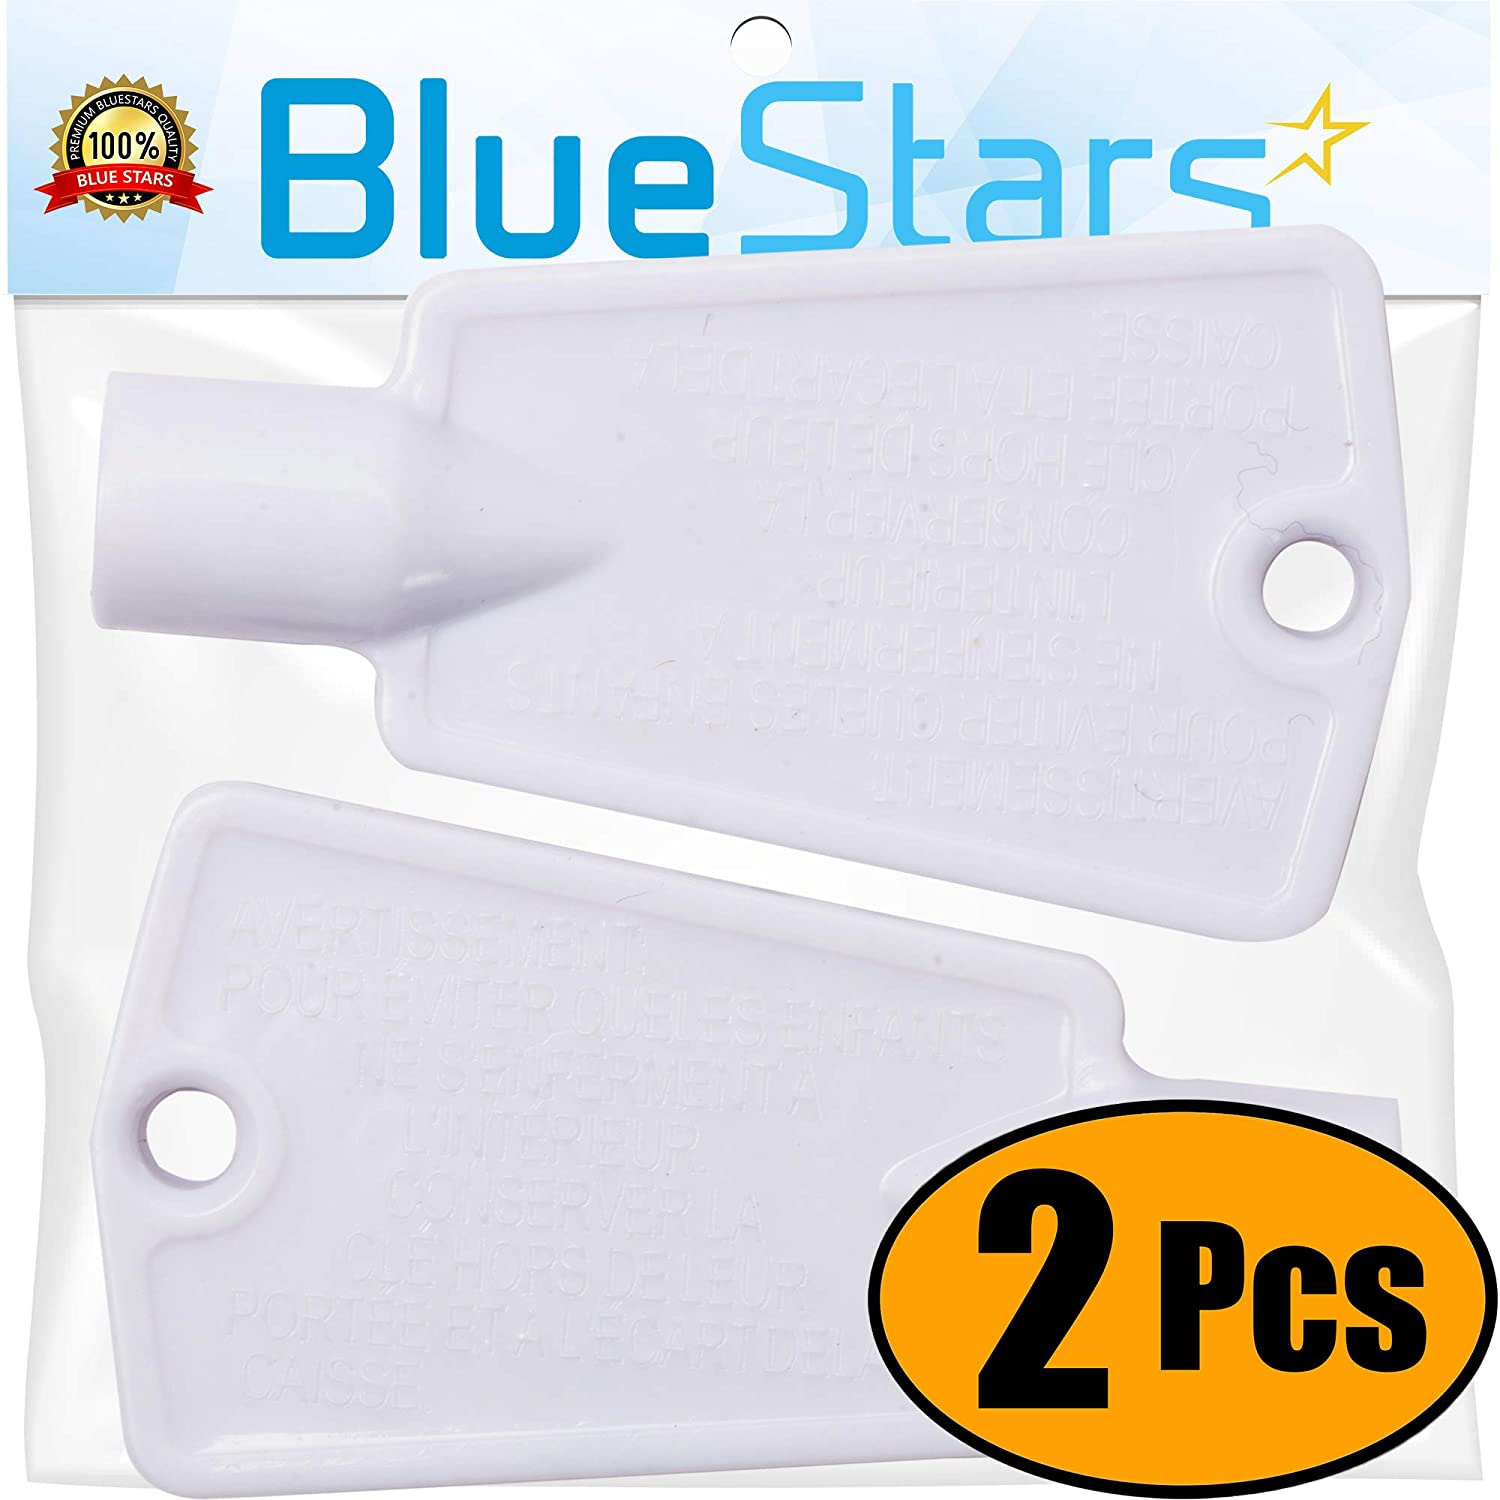 Ultra Durable 297147700 Freezer Door Key Replacement part by Blue Stars - Exact Fit for Frigidaire Kenmore Electrolux freezers - Replaces AP4301346, PS1991481 - PACK OF 2